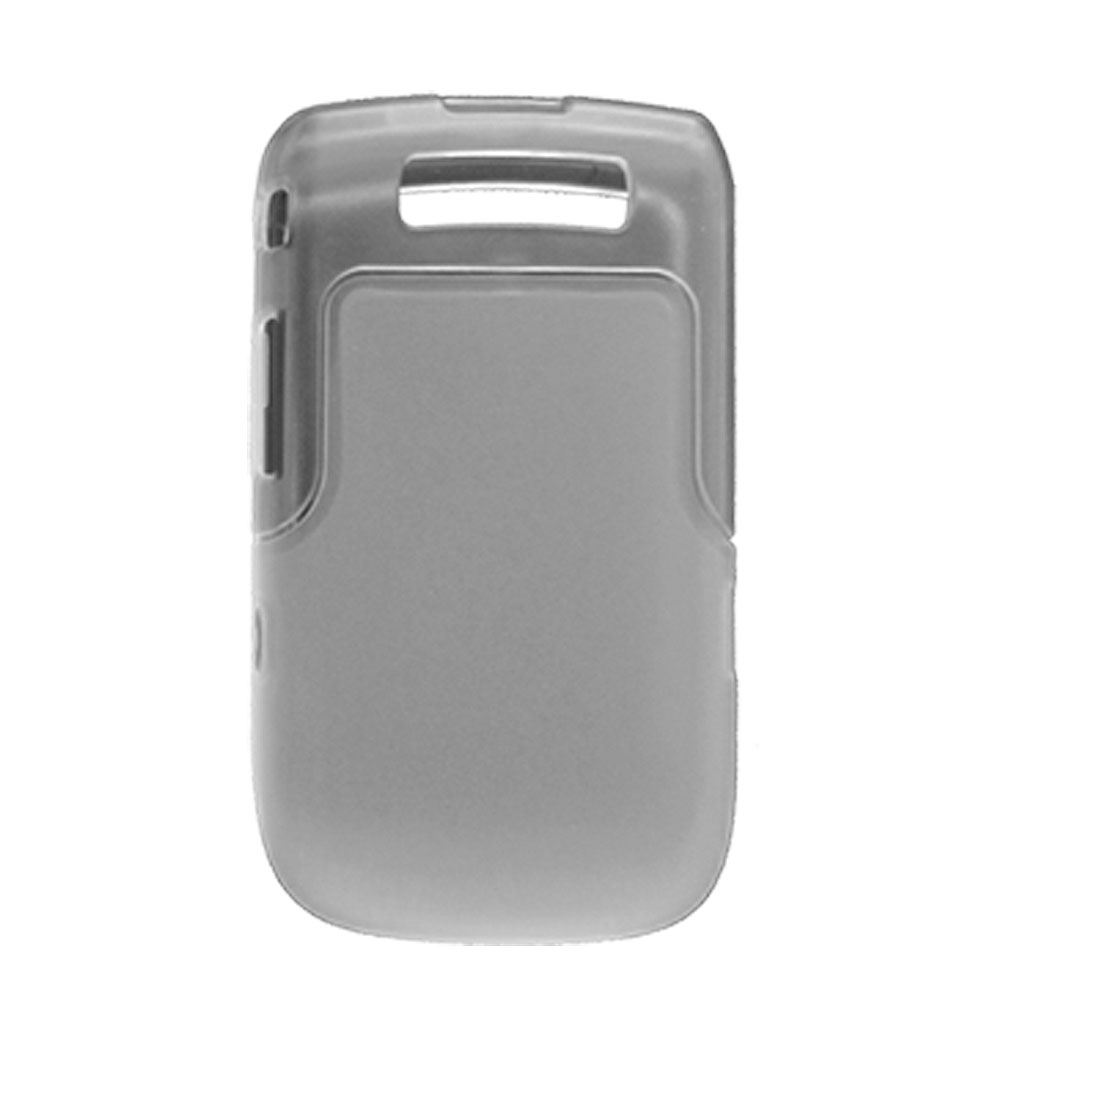 Hard Frame Clear White Soft Plastic Back Case for Blackberry 9800